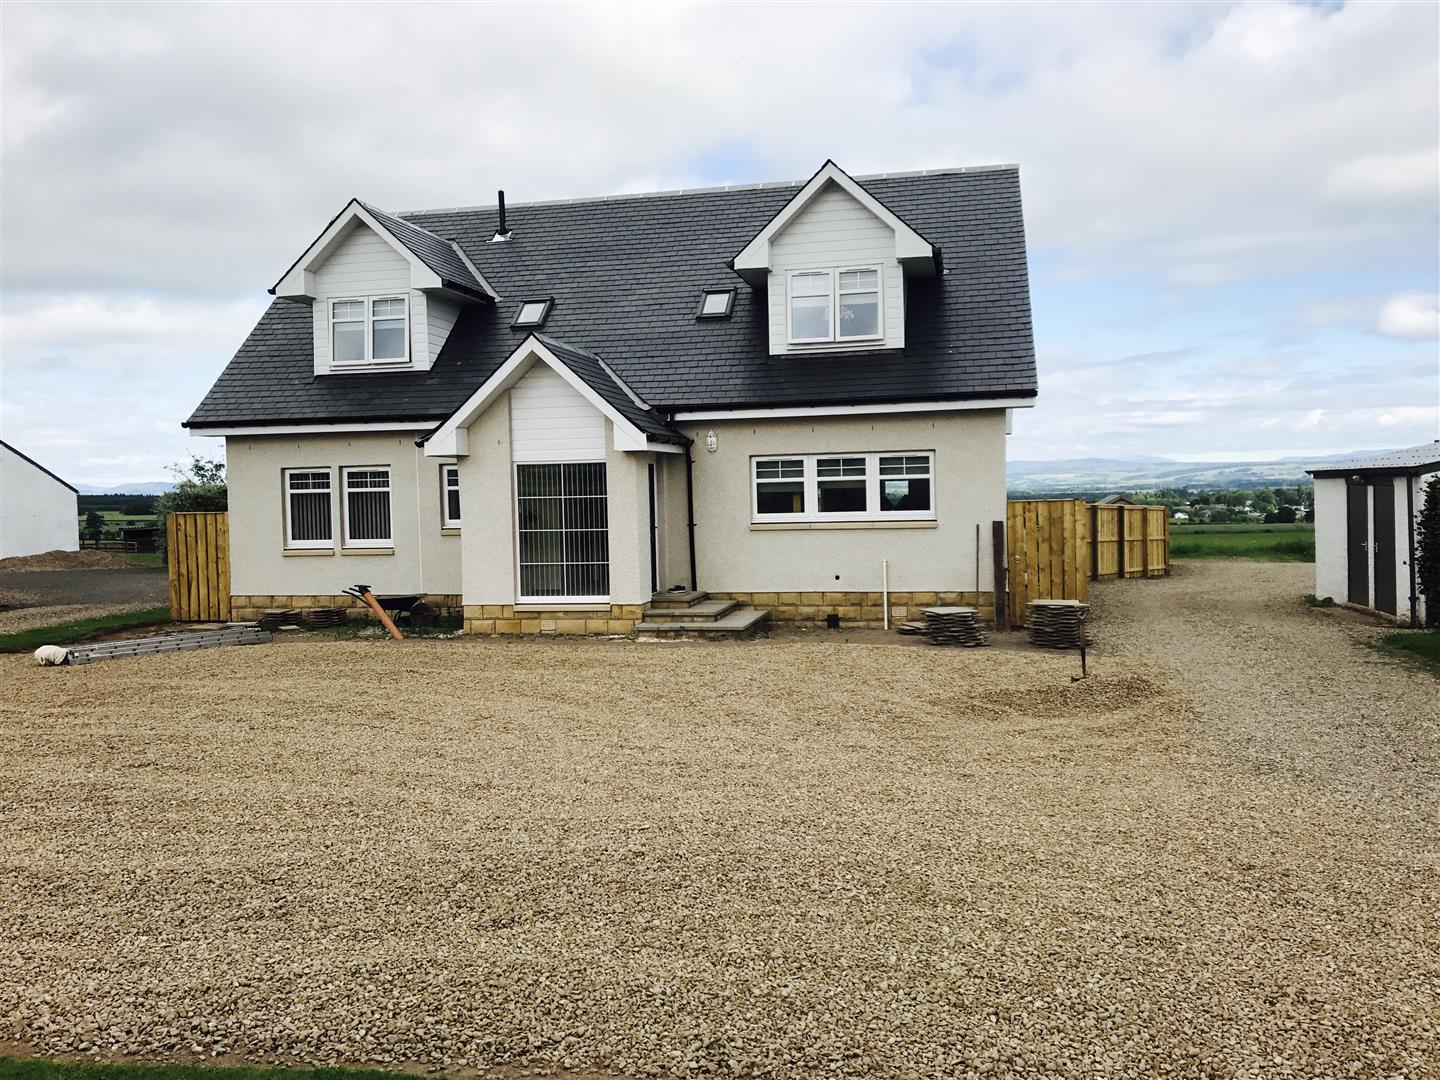 New House, Woodside Farm, Coupar Angus, Perthshire, PH13 9PN, UK